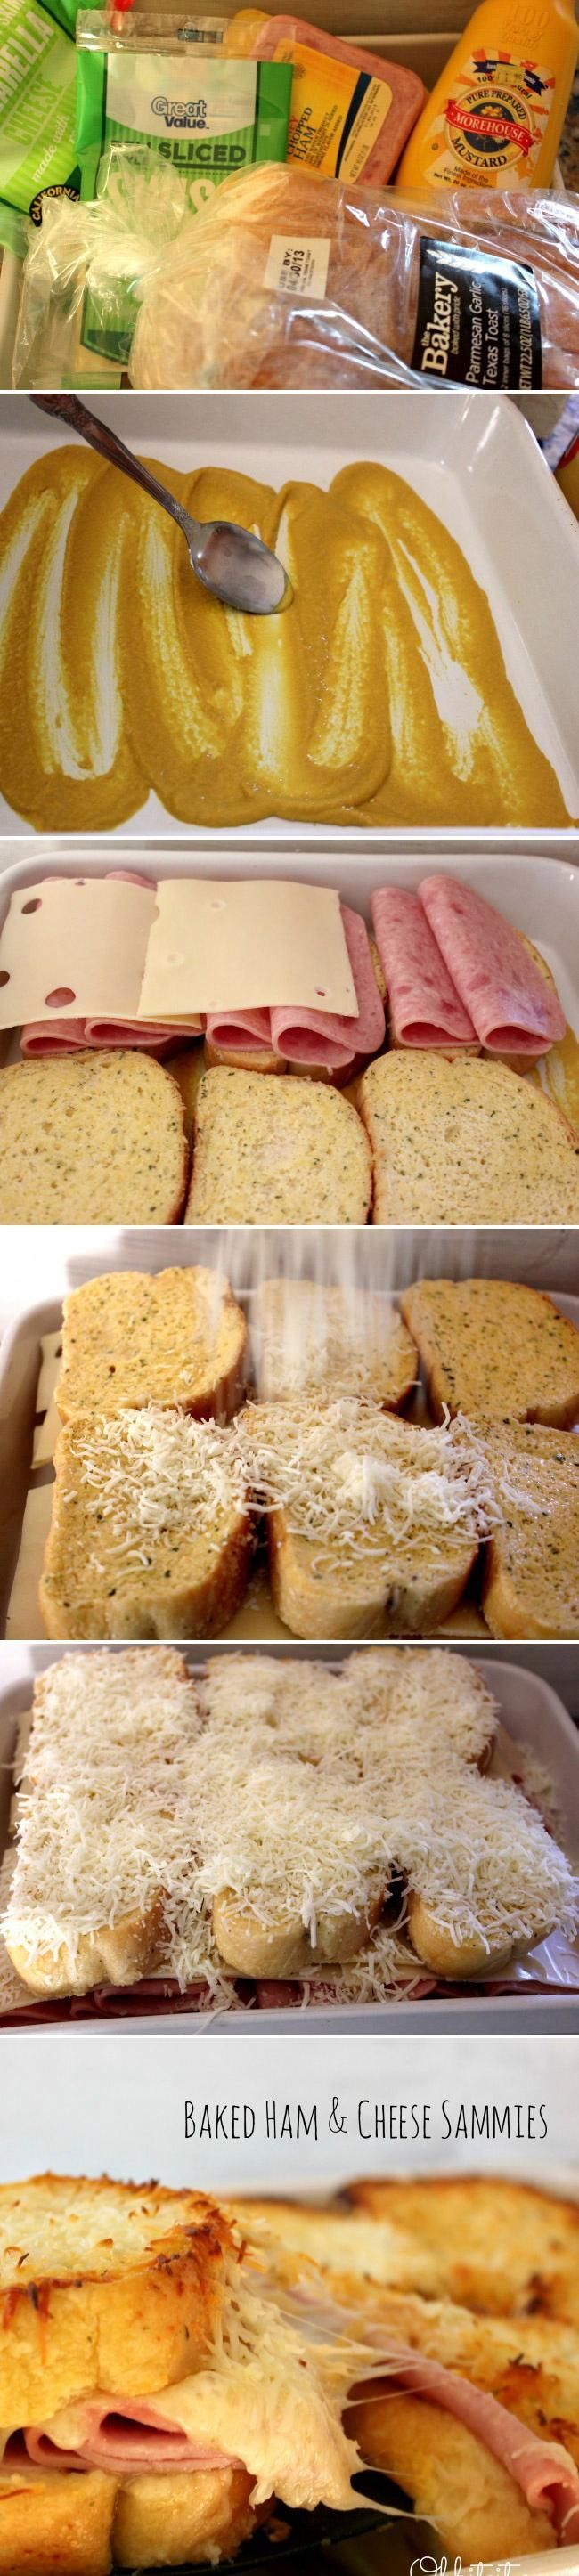 Turn your boring lunch into a gourmet creation with these baked ham and cheese sandwiches. Sliced ham, mozzarella, mustard, and swiss cheese all between two slices of buttered Texas toast. Ready for lunch?